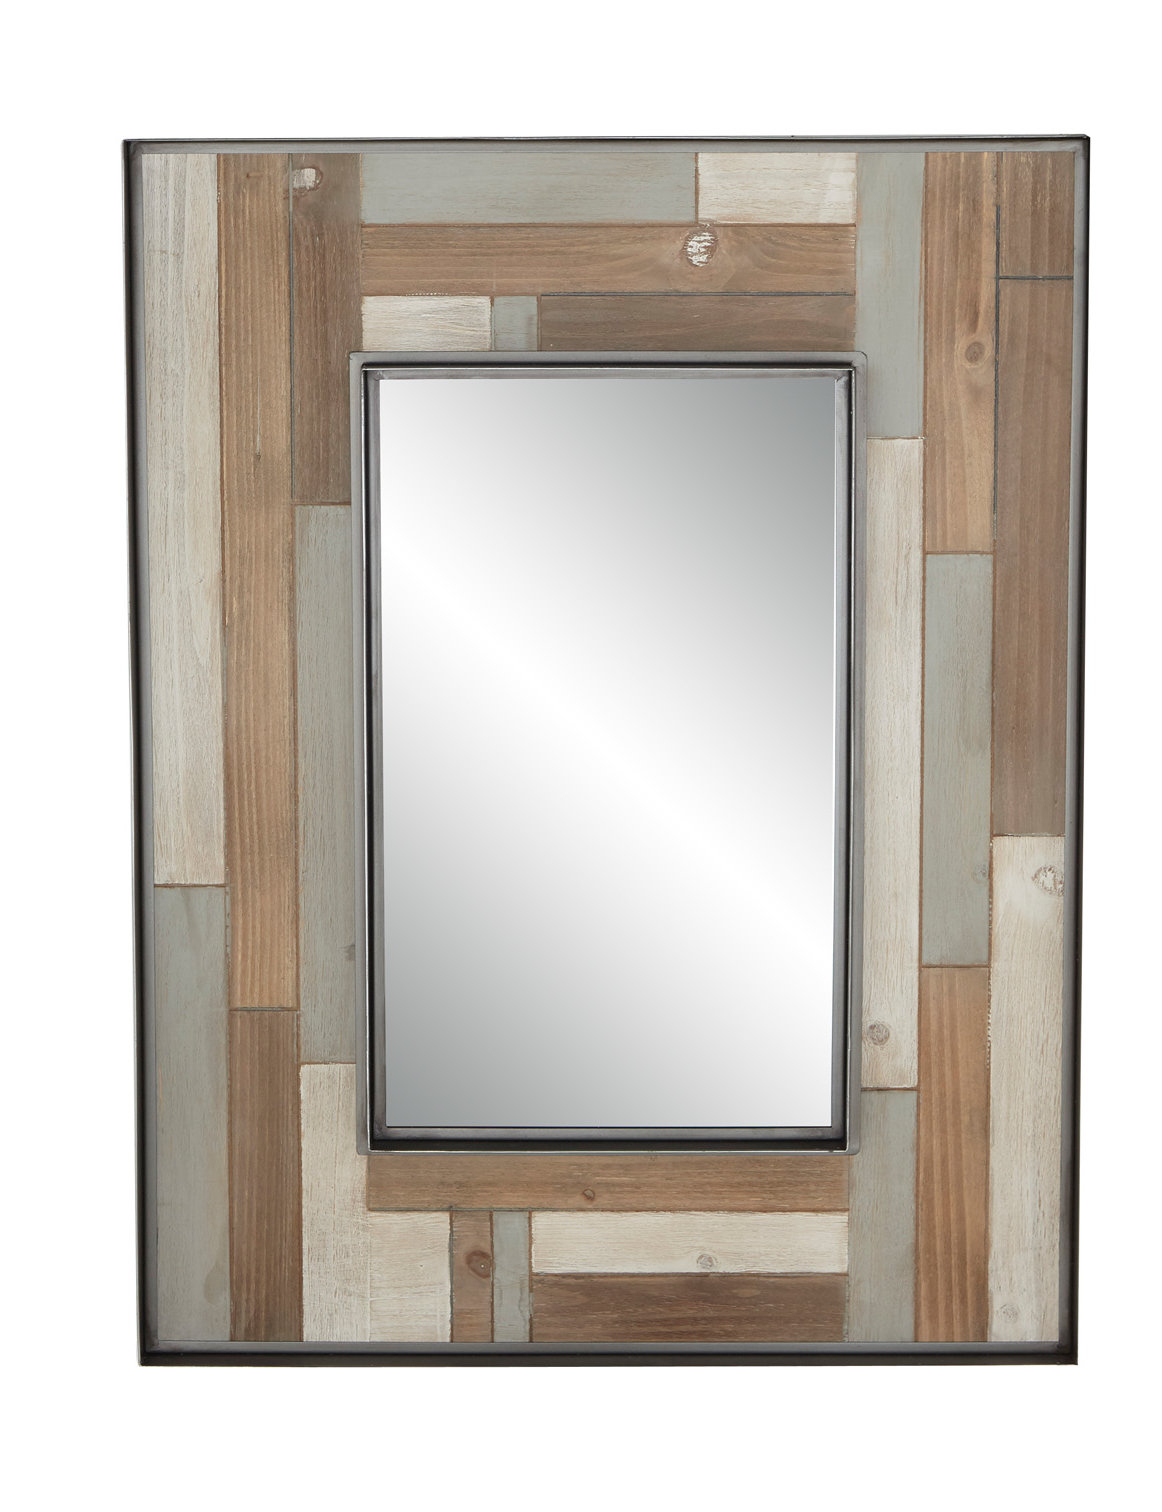 Williamstown Rustic Rectangular Accent Mirror pertaining to Longwood Rustic Beveled Accent Mirrors (Image 28 of 30)